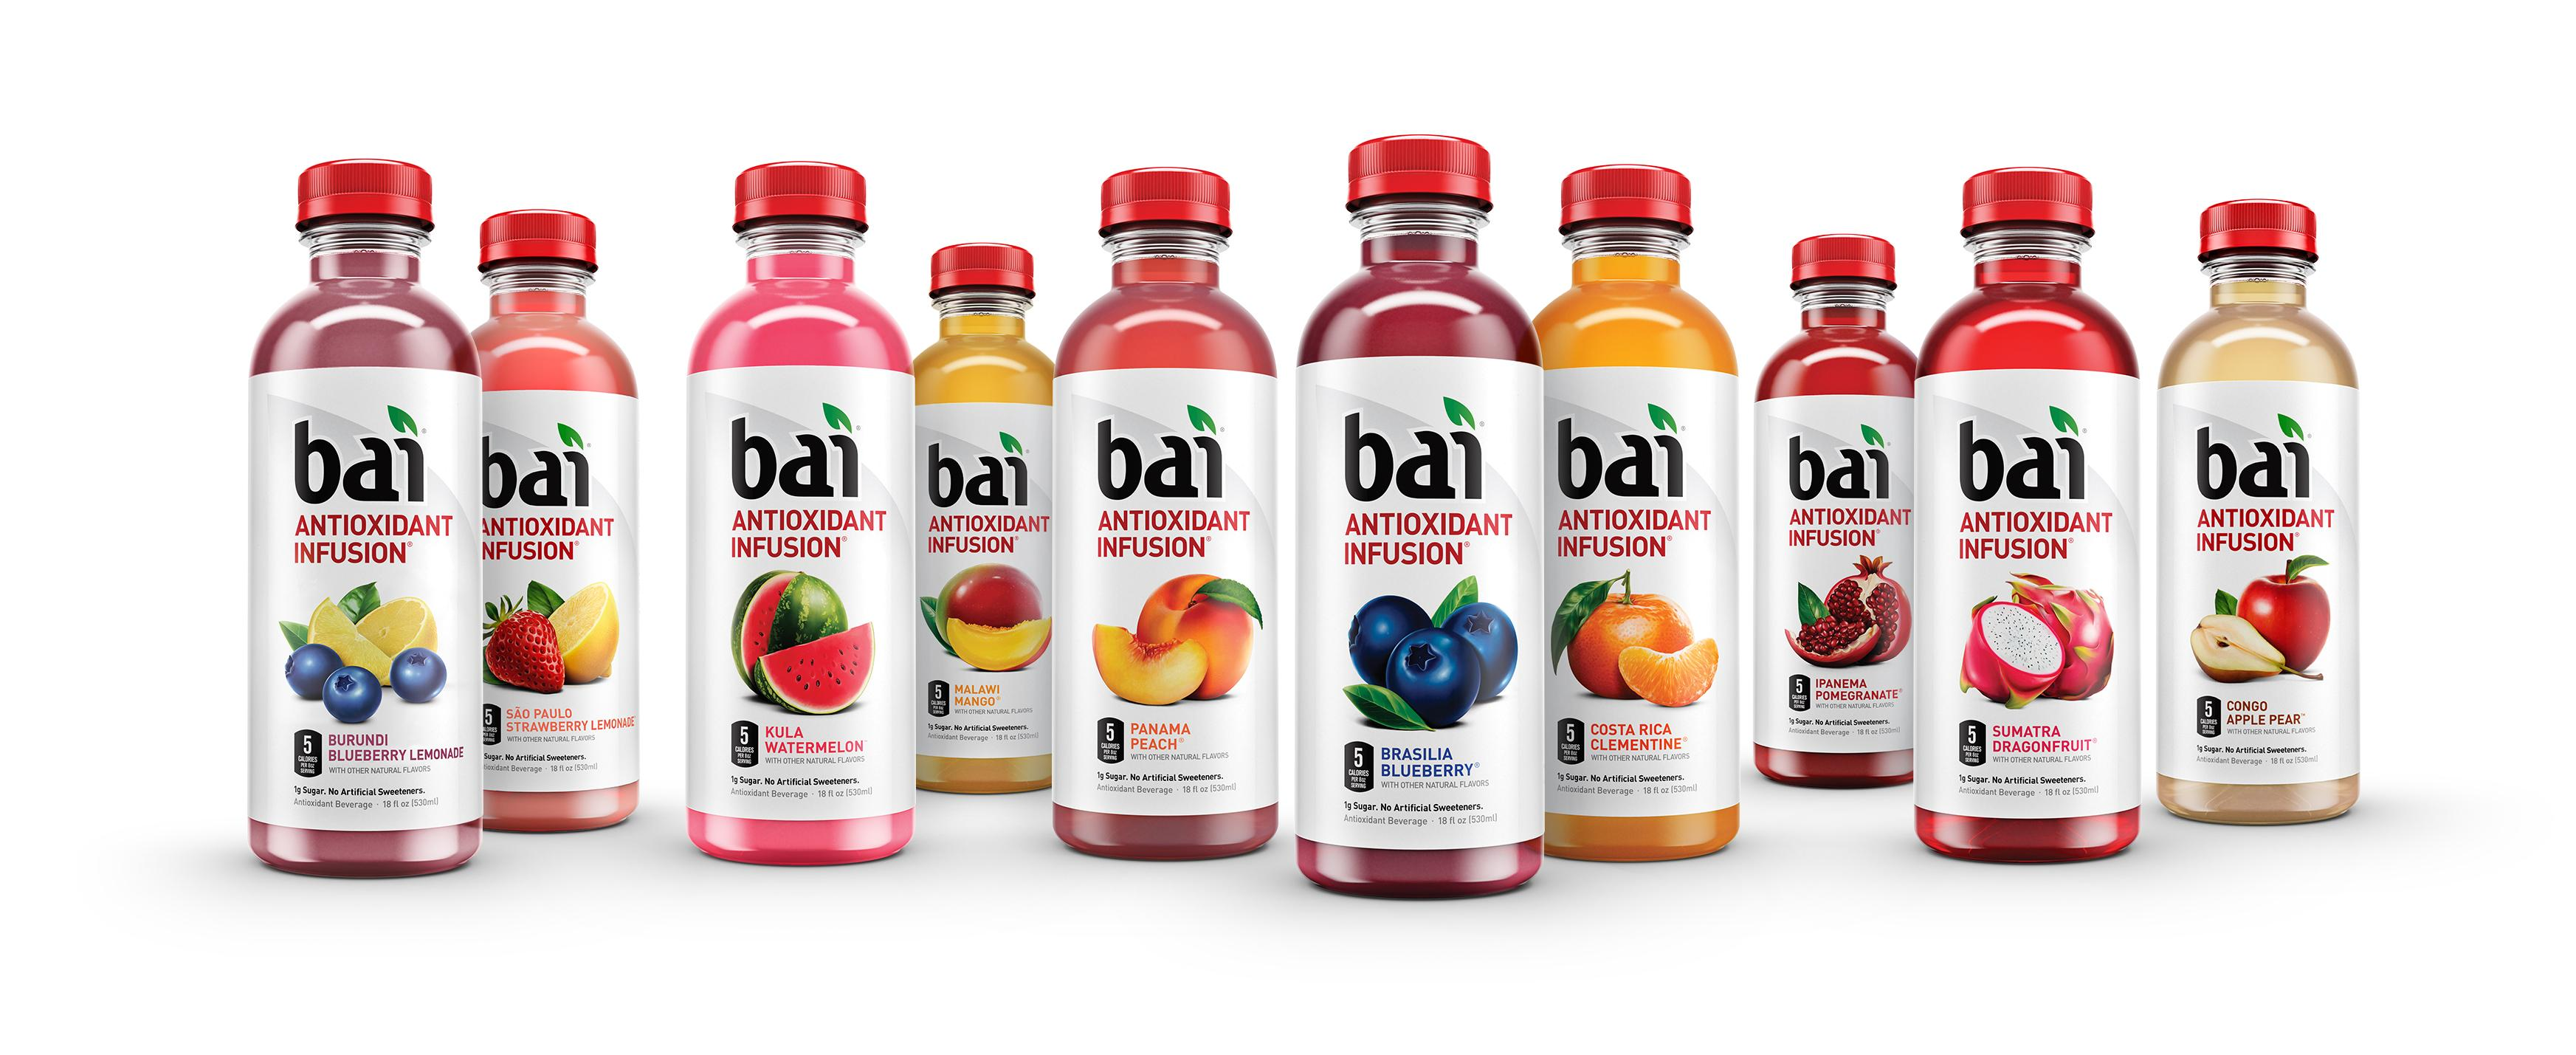 Bai Mountainside Variety Pack Antioxidant Infused